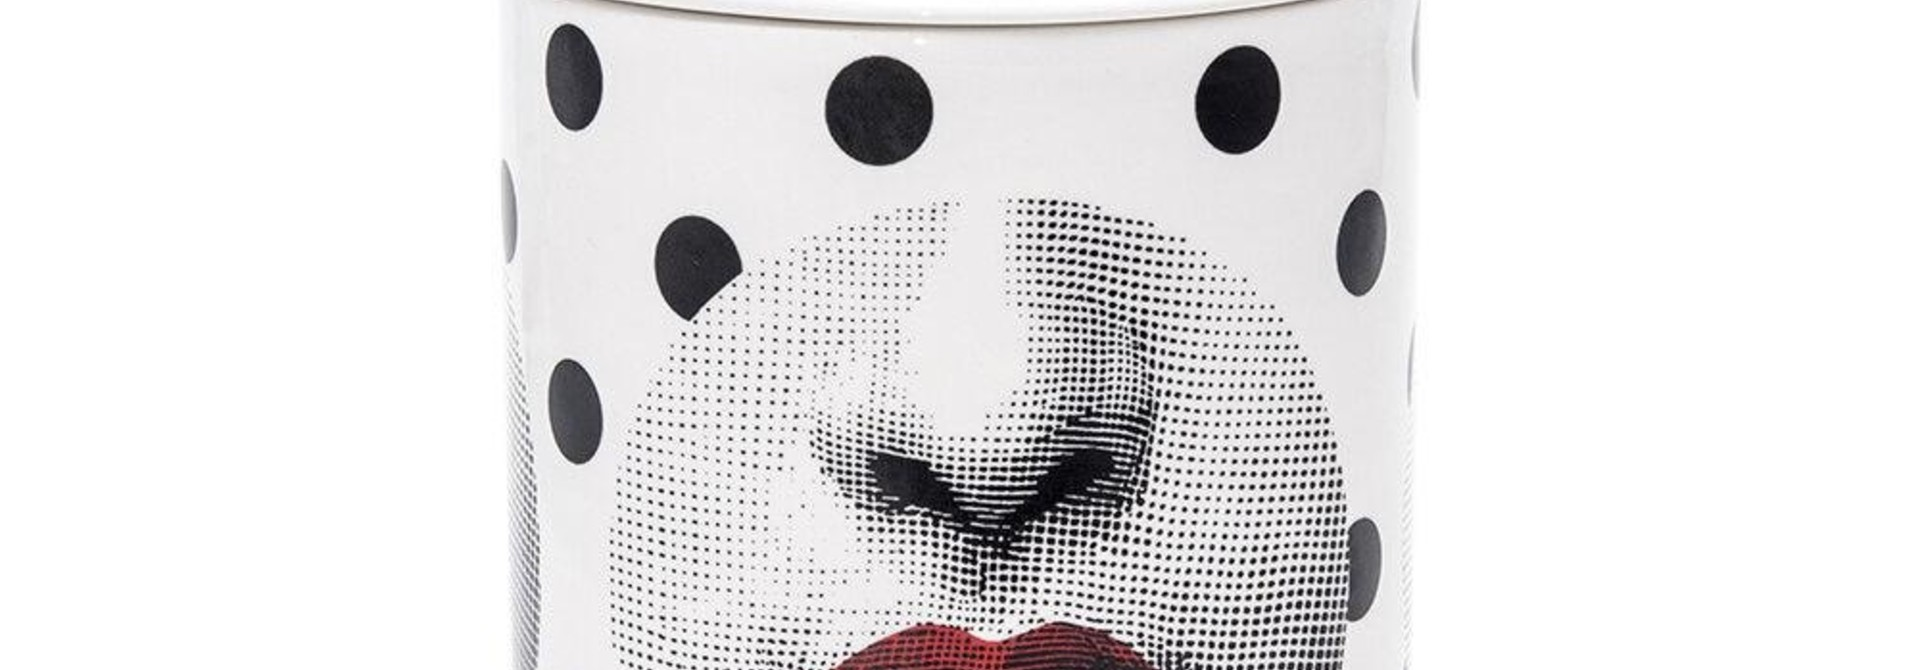 FORNASETTI - Comme Des Forna candle 300gr